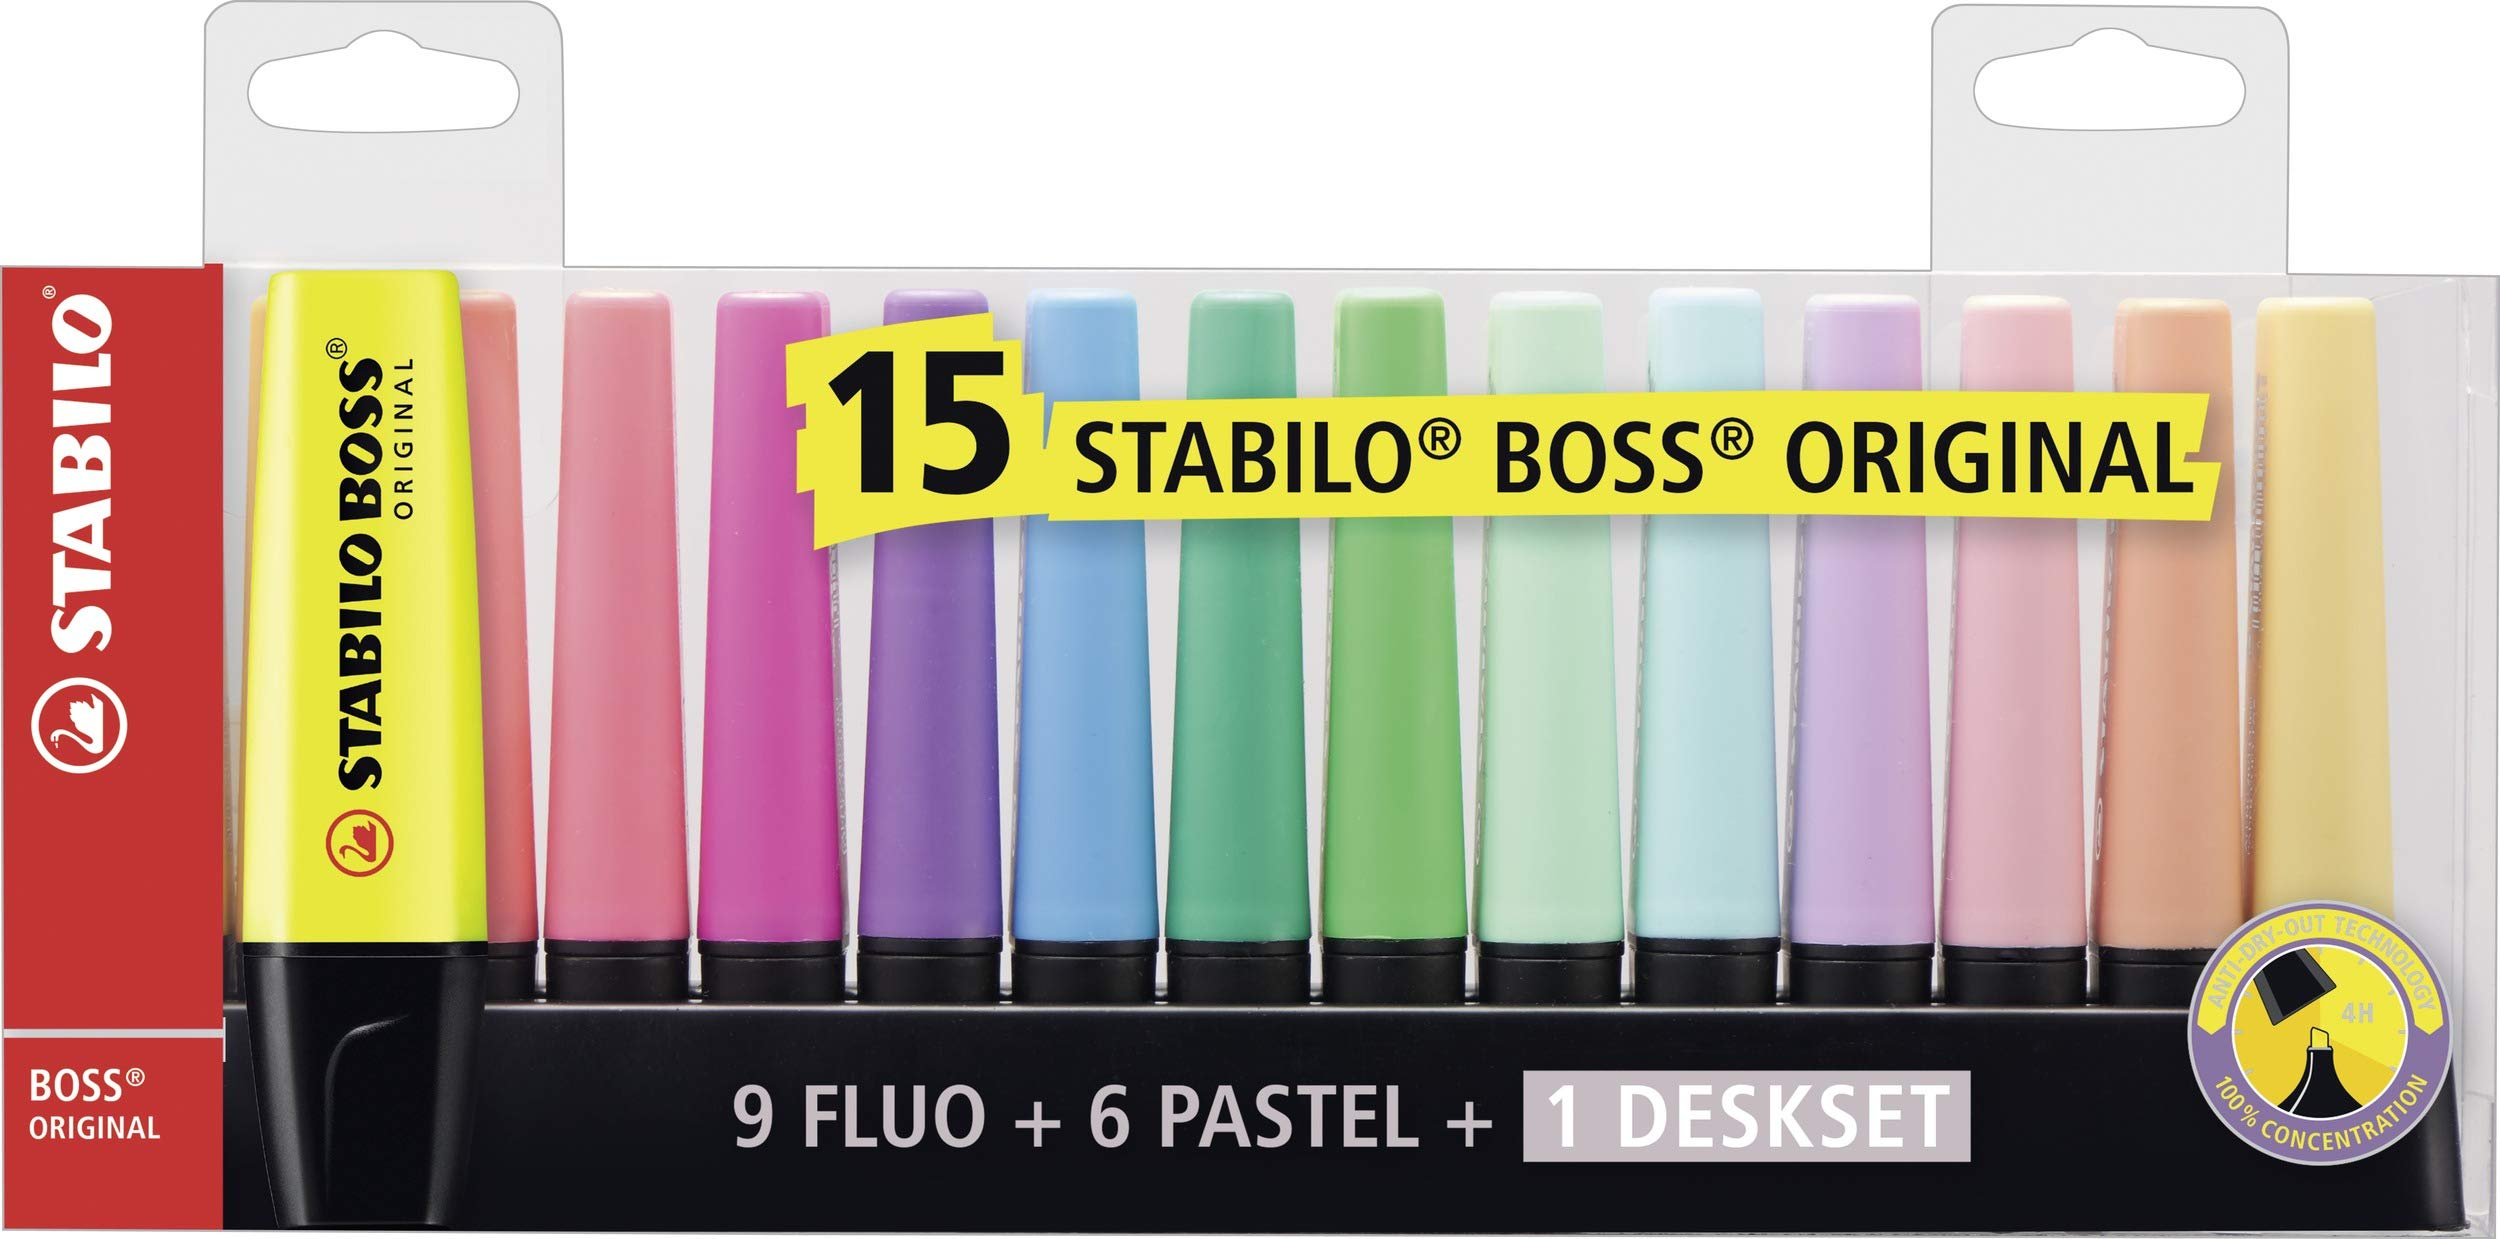 Stabilo Boss Original Highlighter Deskset of 15 Assorted Colours - Limited Edition by Stablio (Image #1)